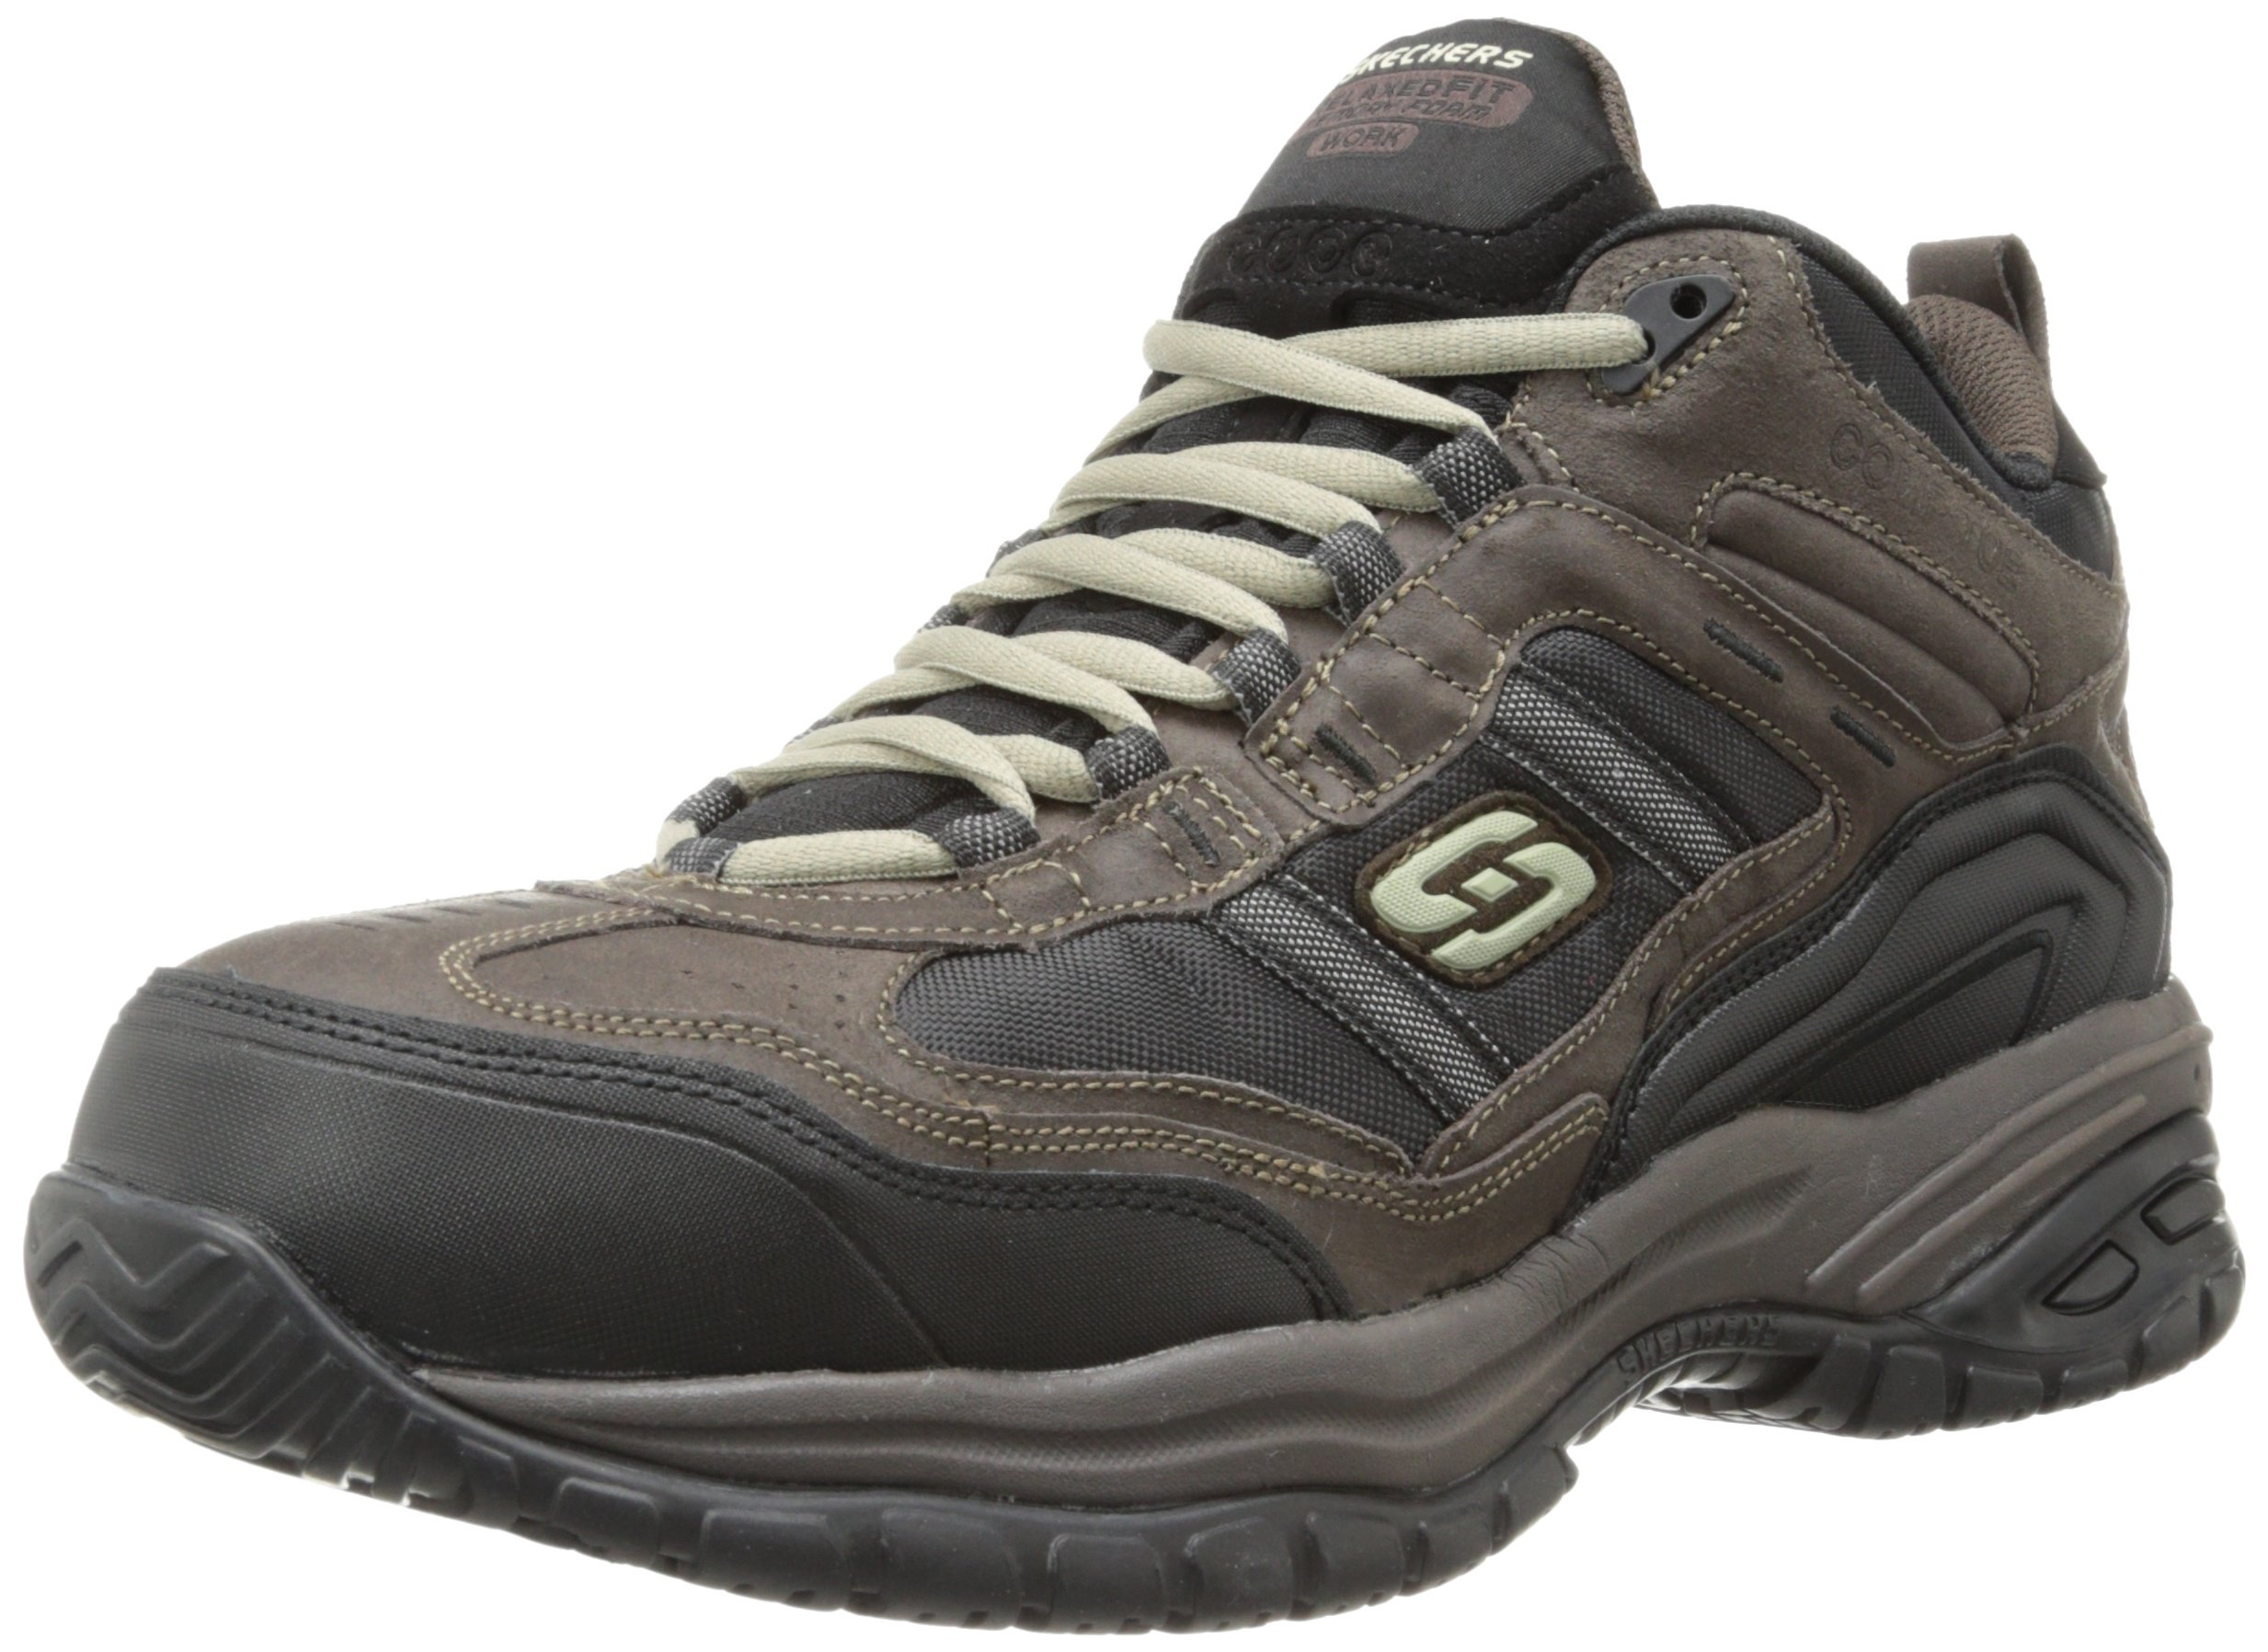 Skechers Men's Work Relaxed Fit Soft Stride Canopy Comp Toe Shoe, Brown/Black - 9 3E US by Skechers